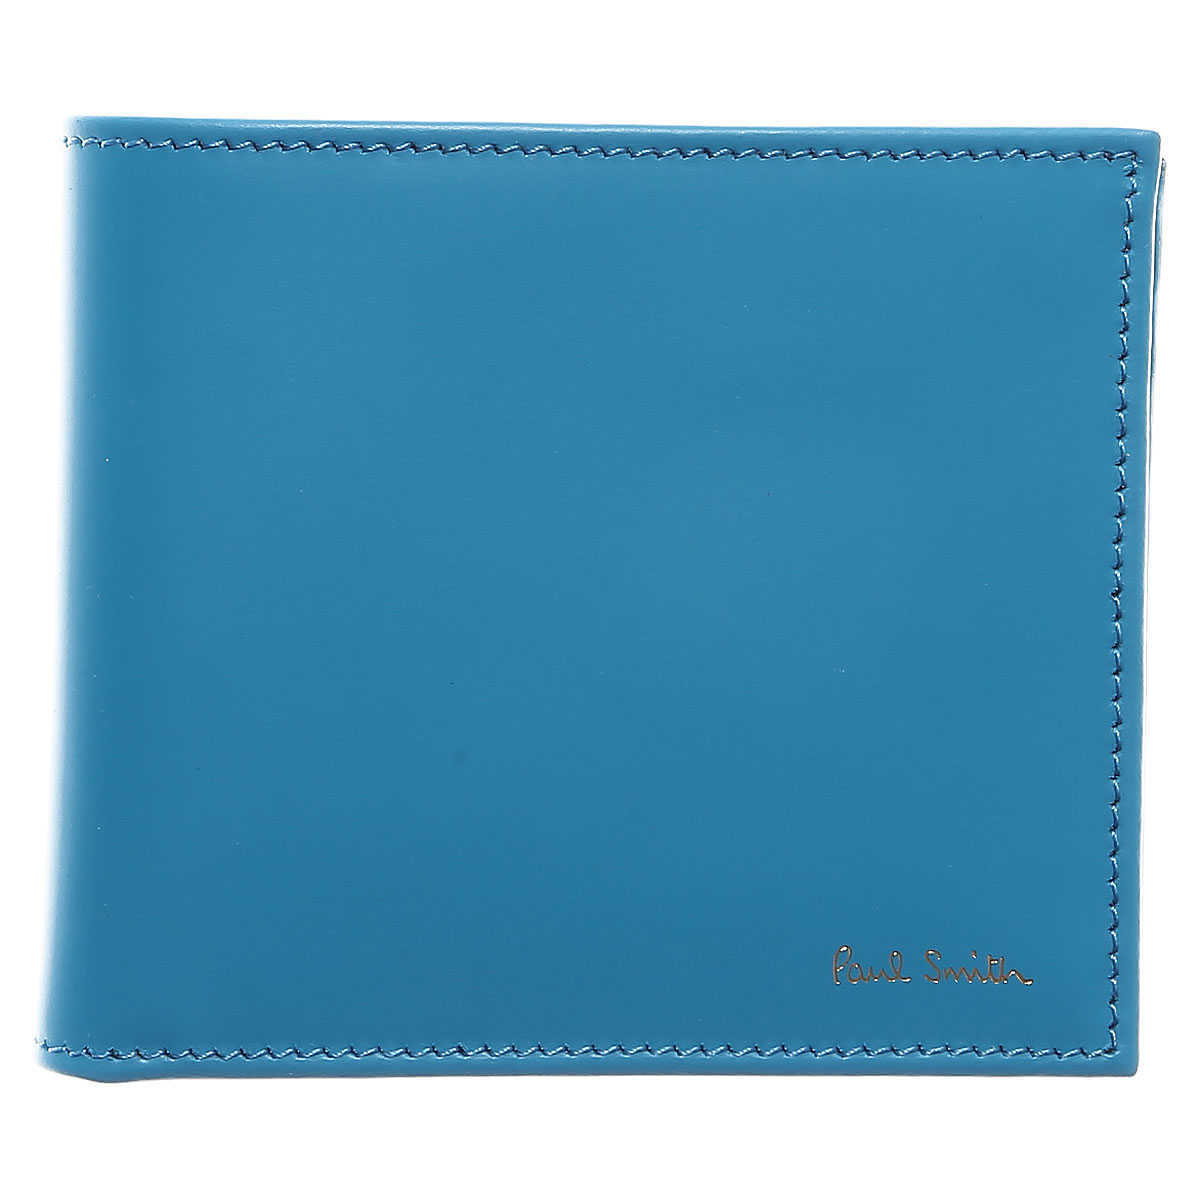 Paul Smith Wallet for Men Azure - GOOFASH